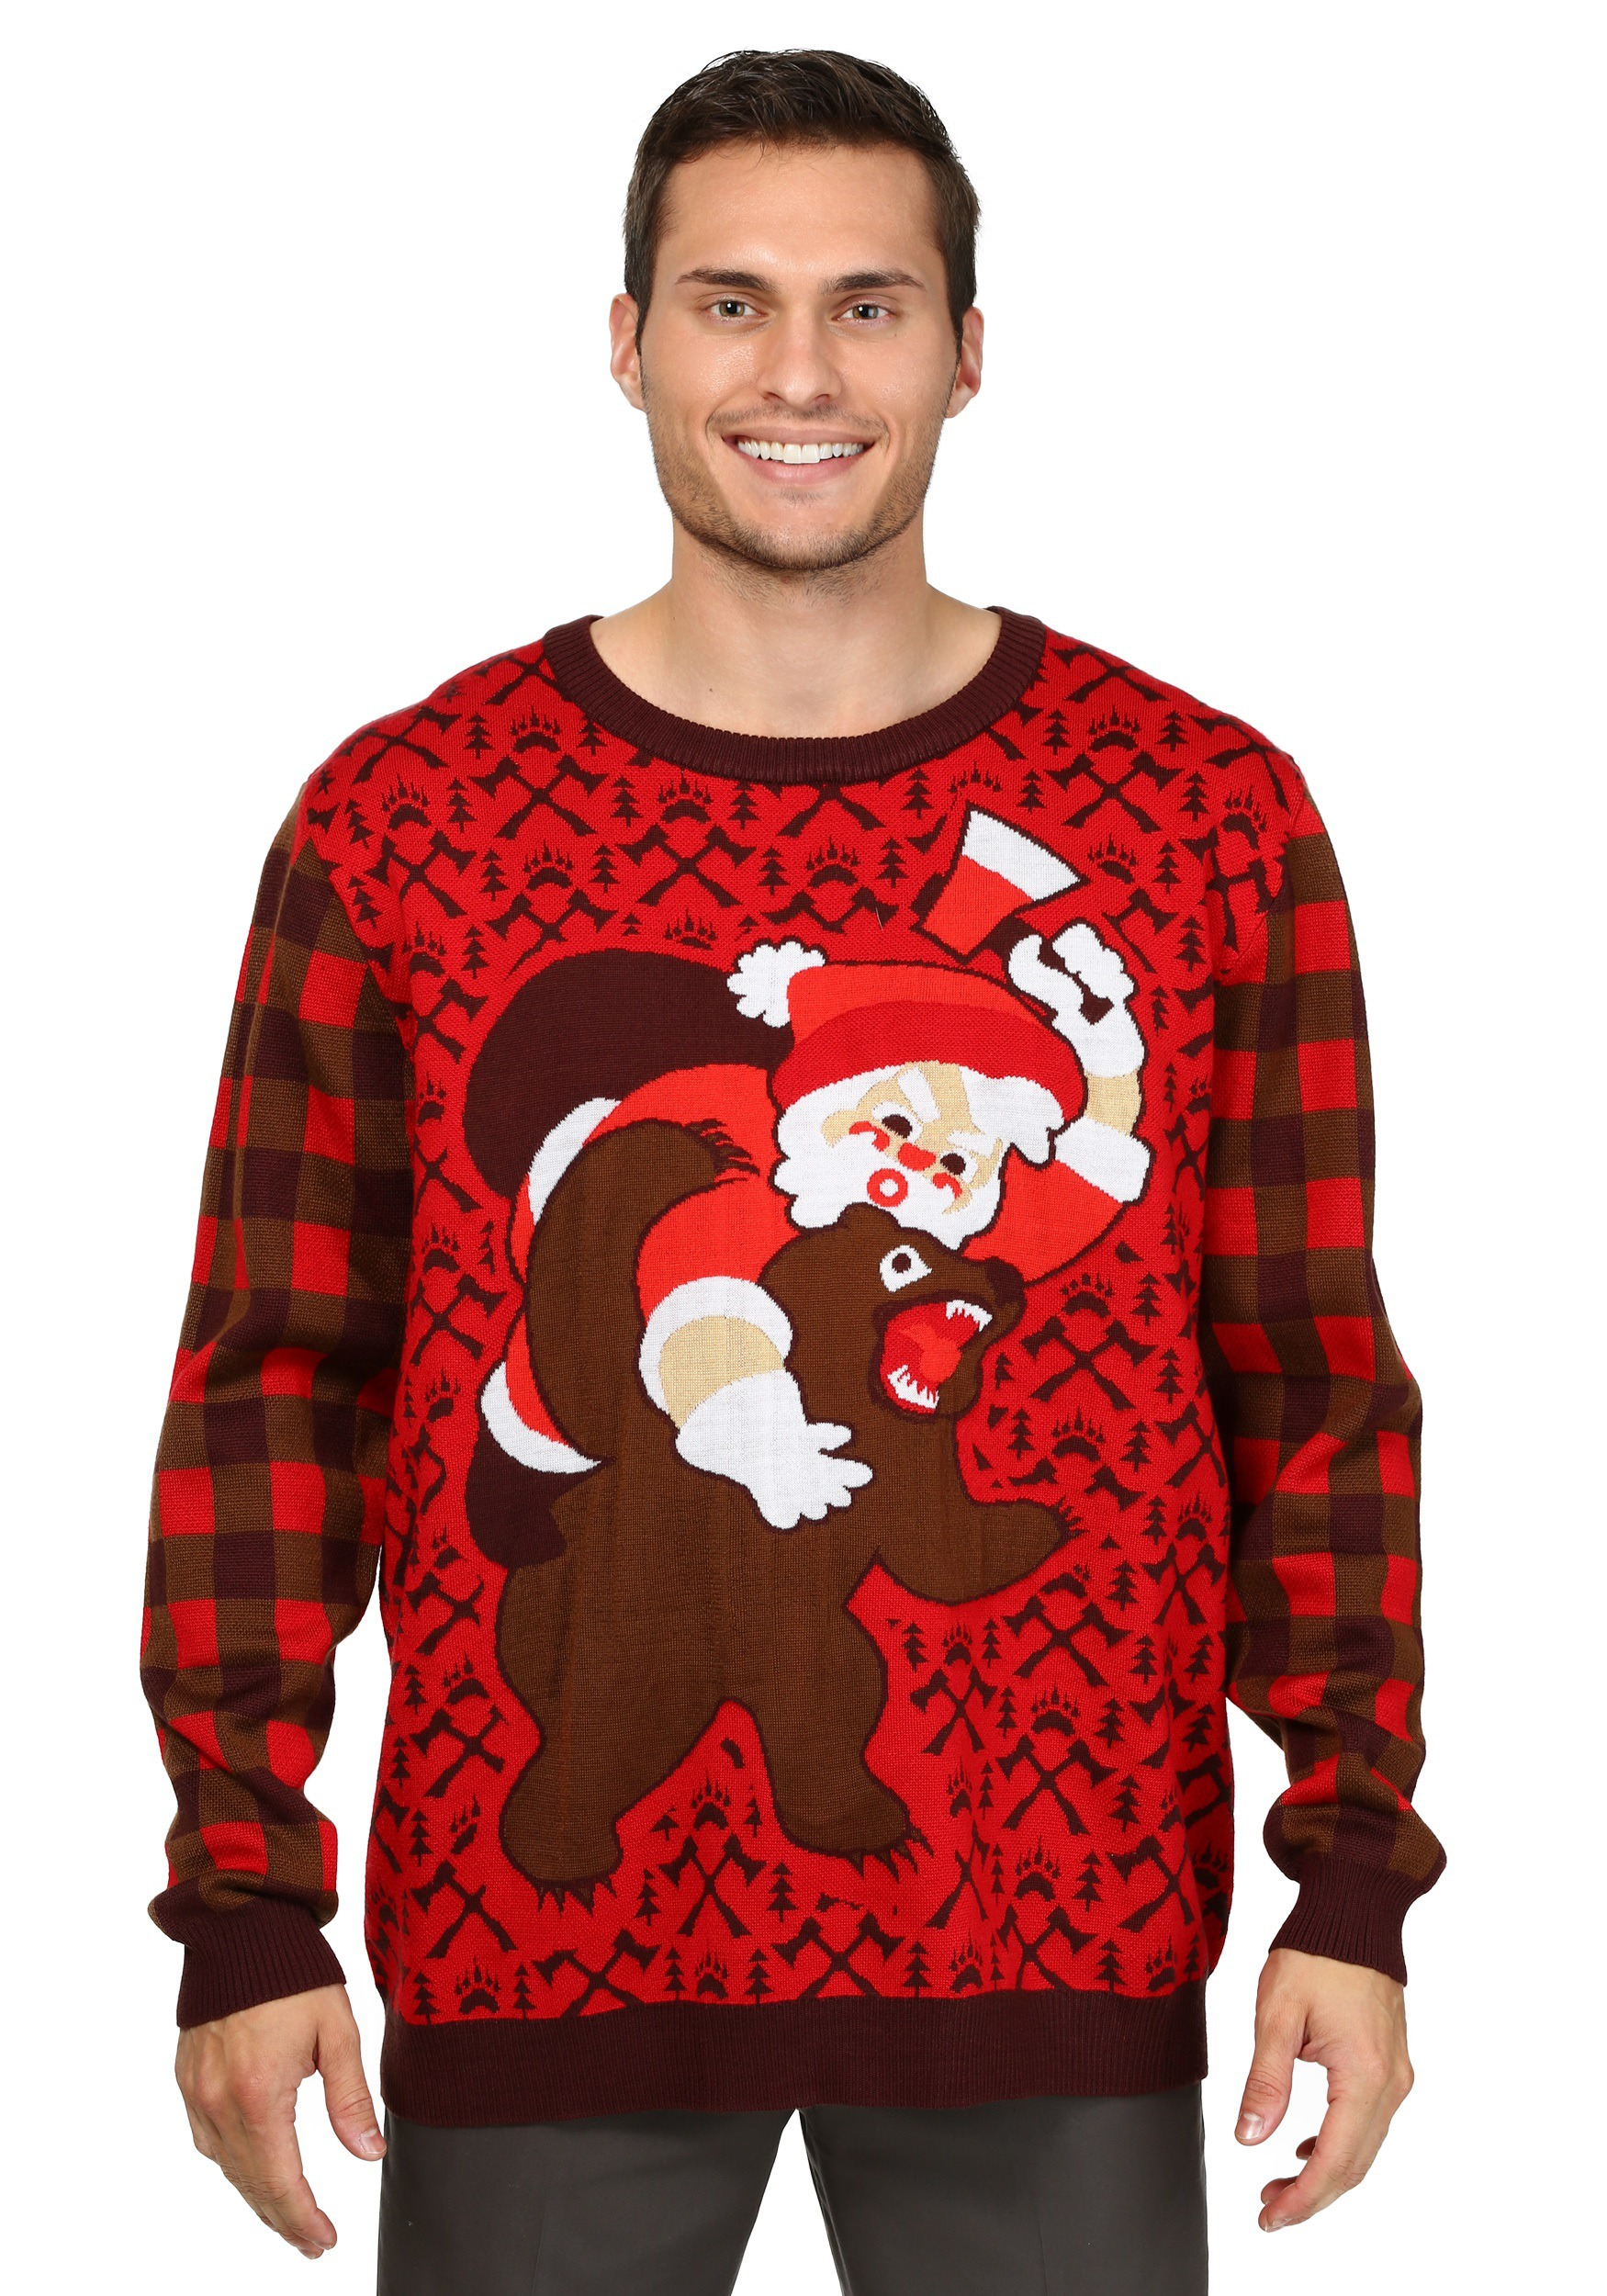 Santa vs. Bear Ugly Christmas Sweater